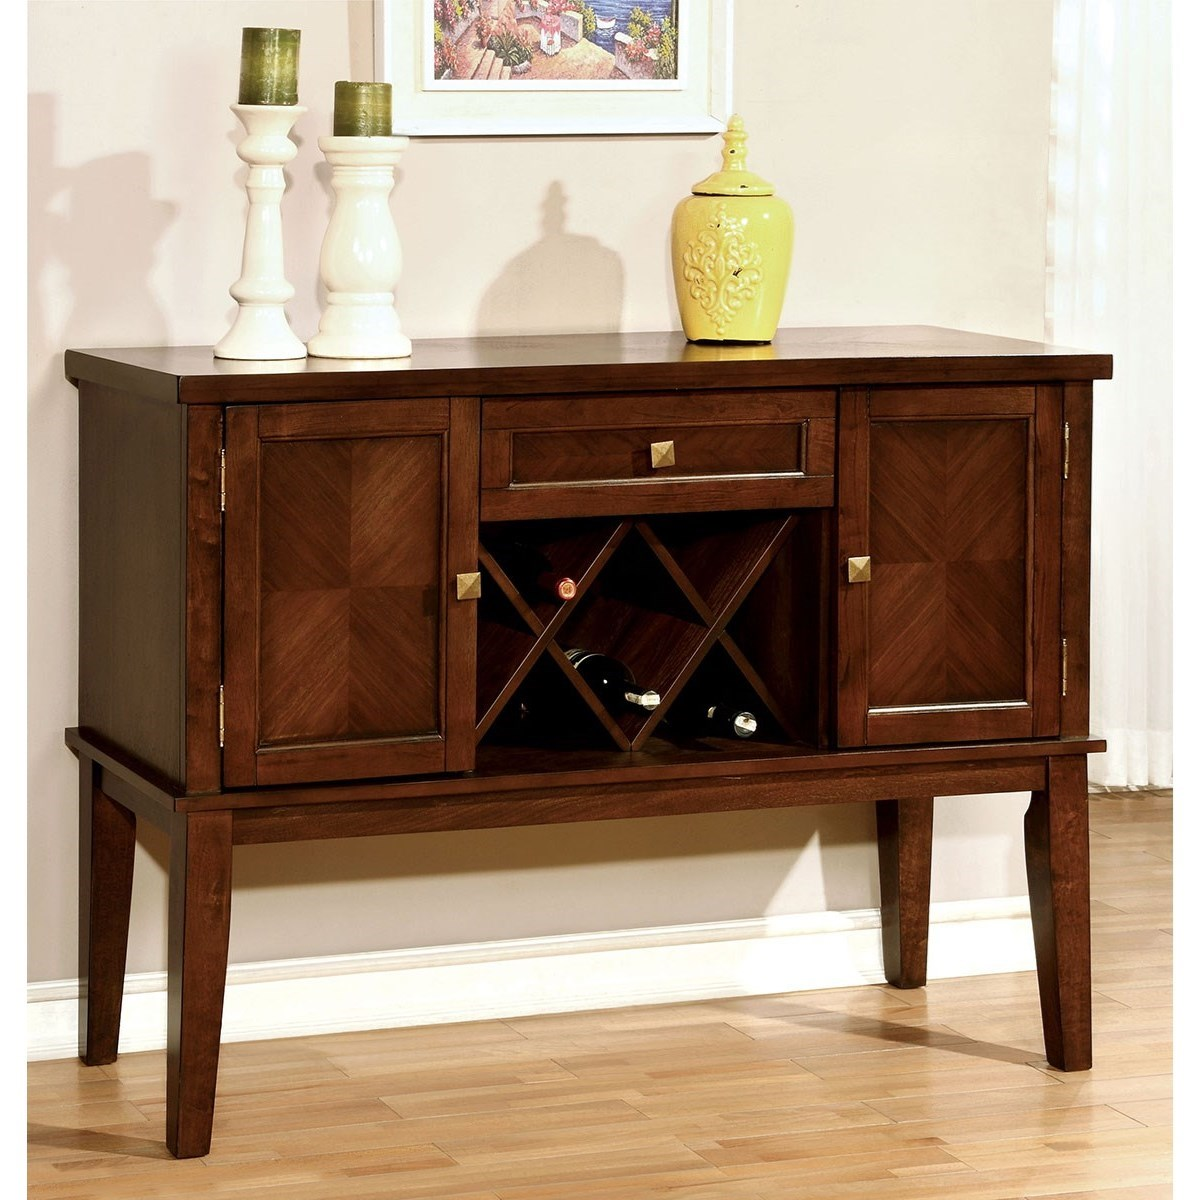 Furniture Of America Hillsview CM3916SV Transitional